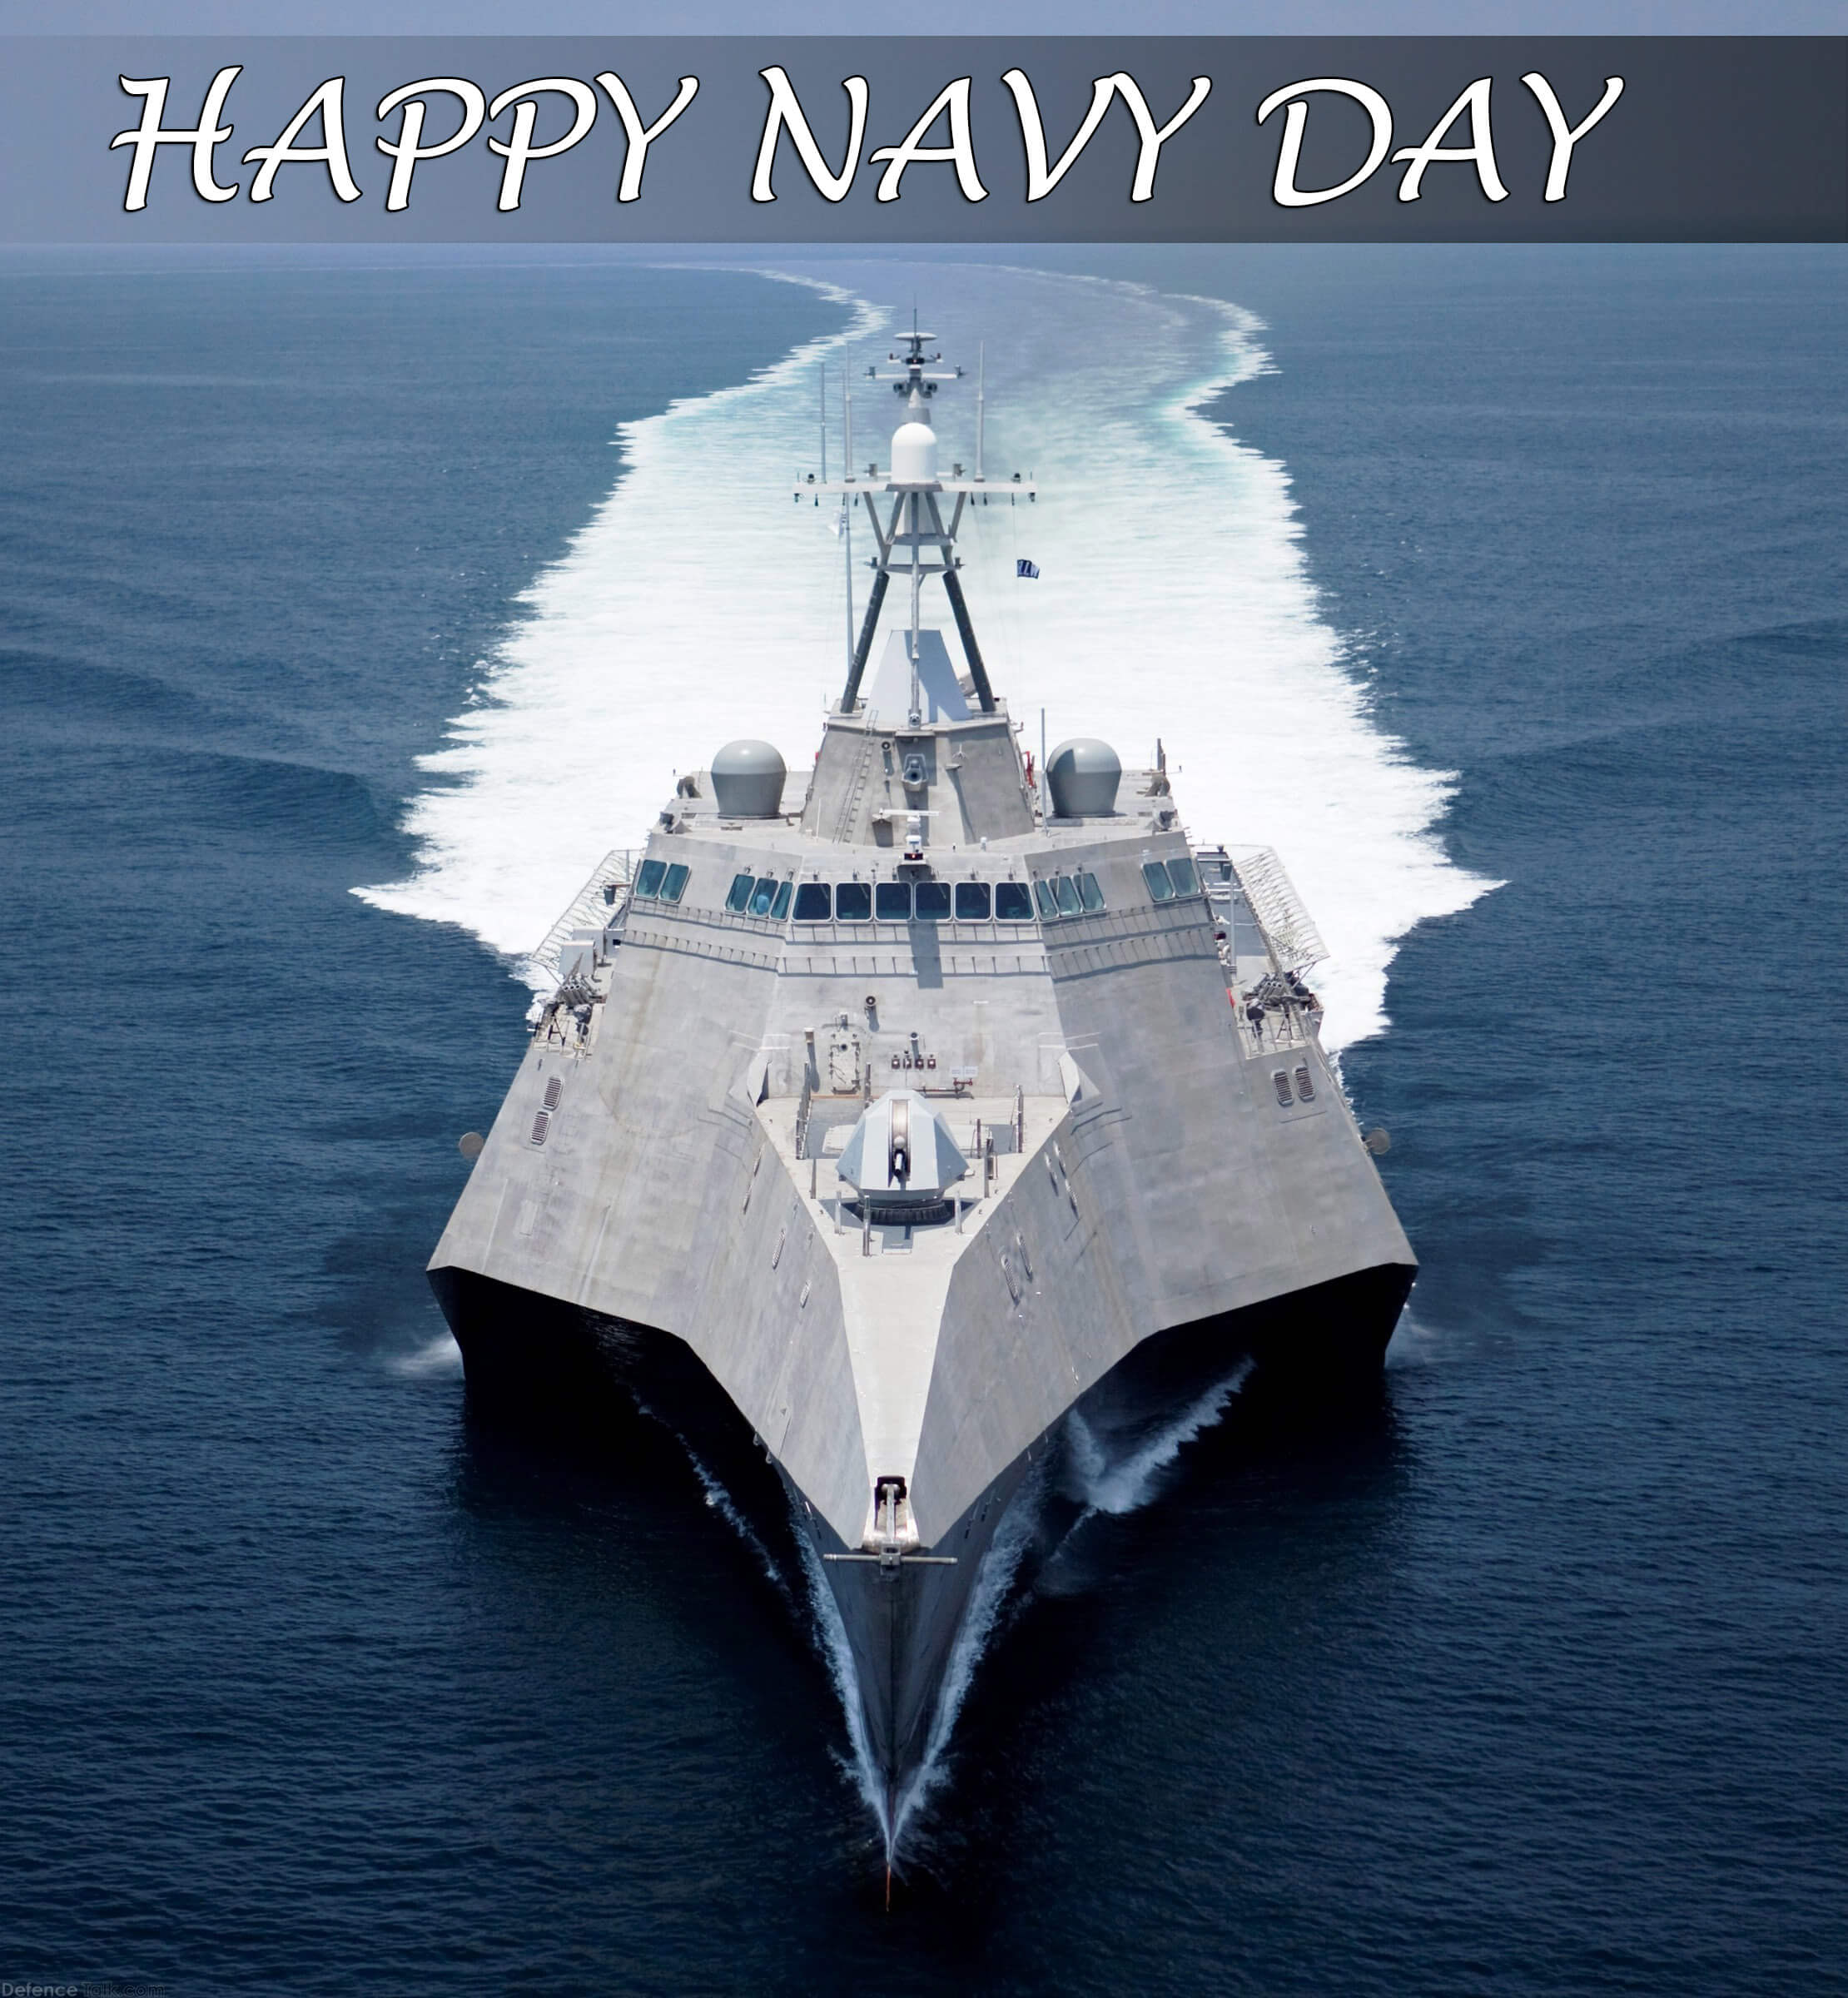 Navy Day Wallpapers Free Download